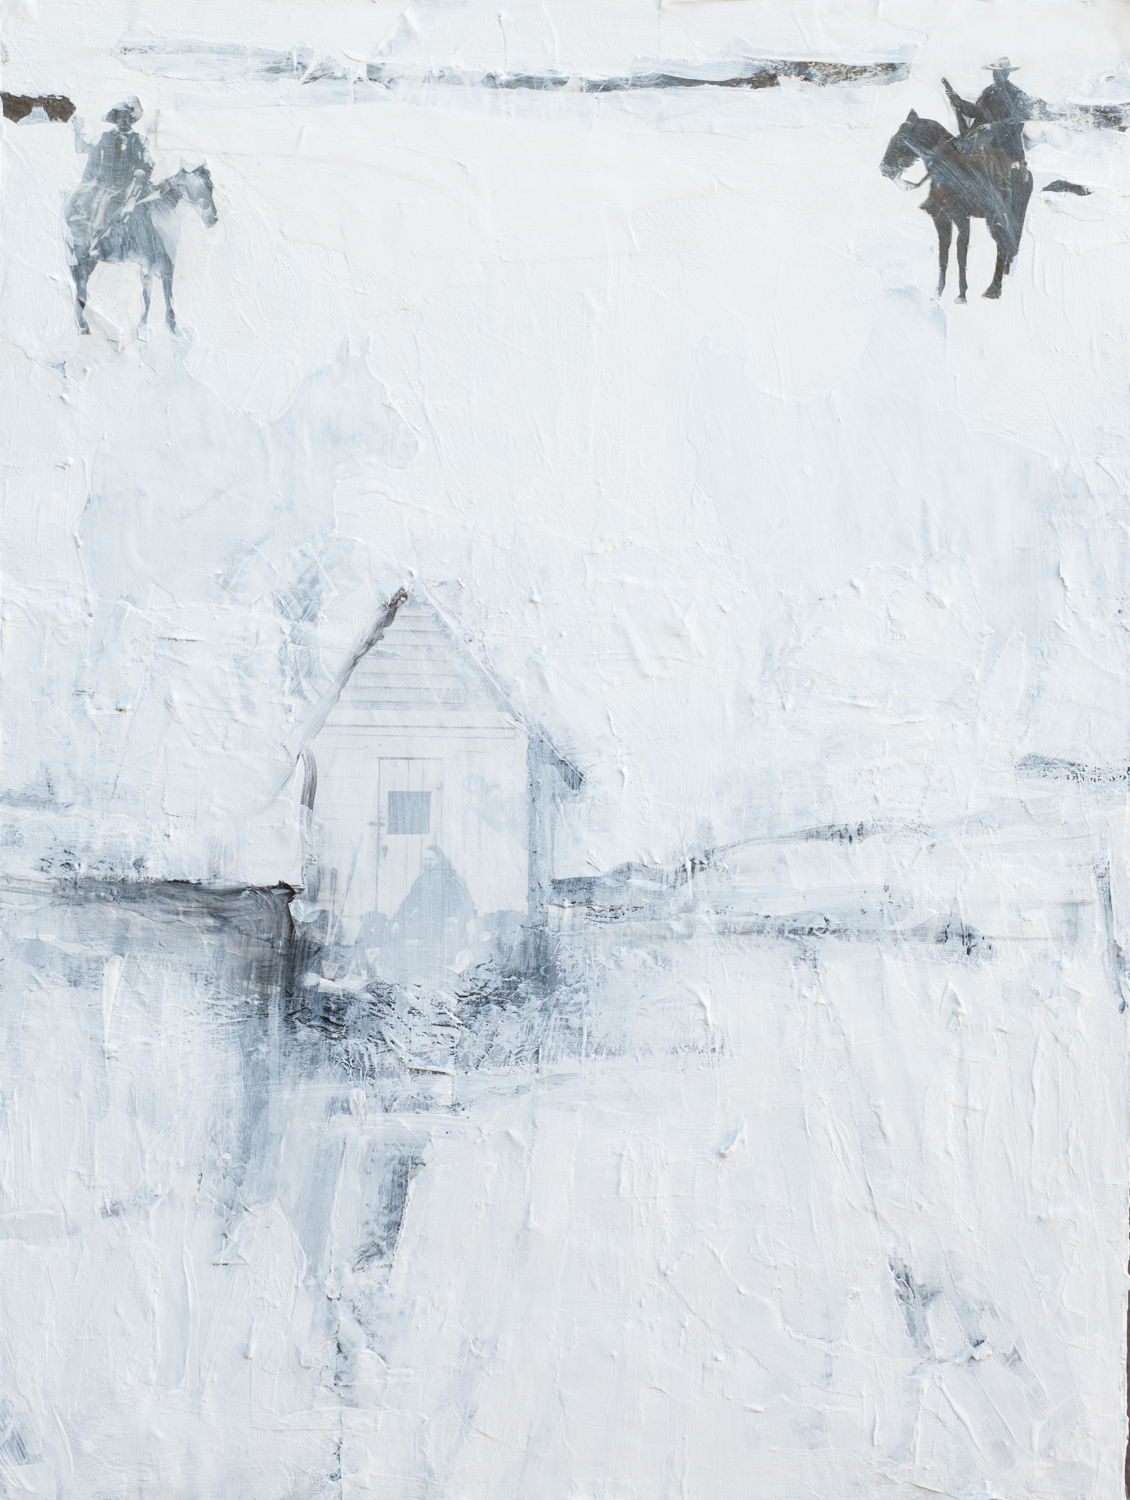 "Homestead, mixed media on panel, 24x18"", 2012"